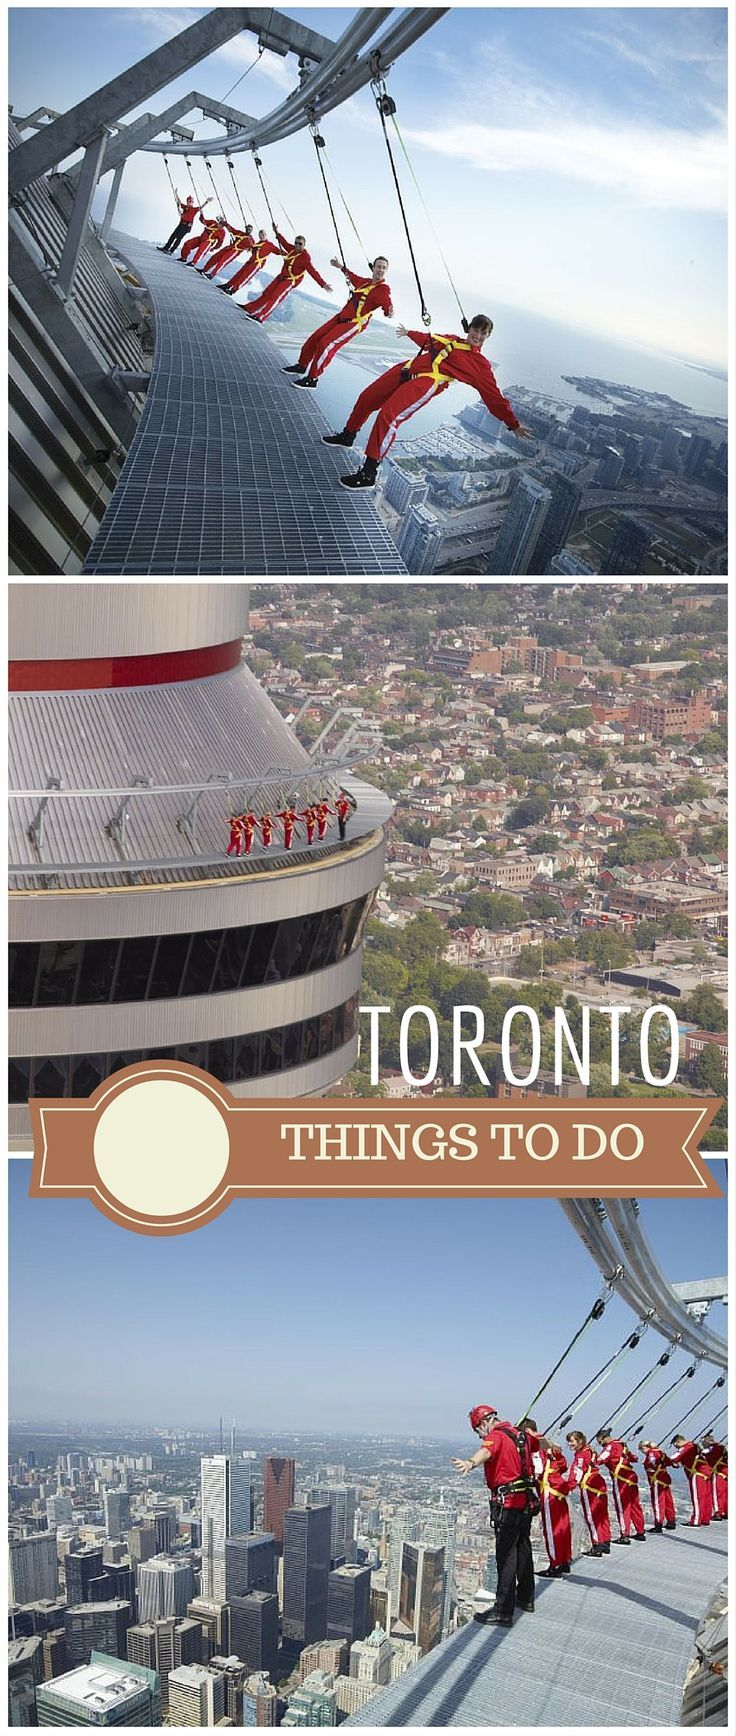 The EdgeWalk. Brave enough to try this?  Photo: CN Tower